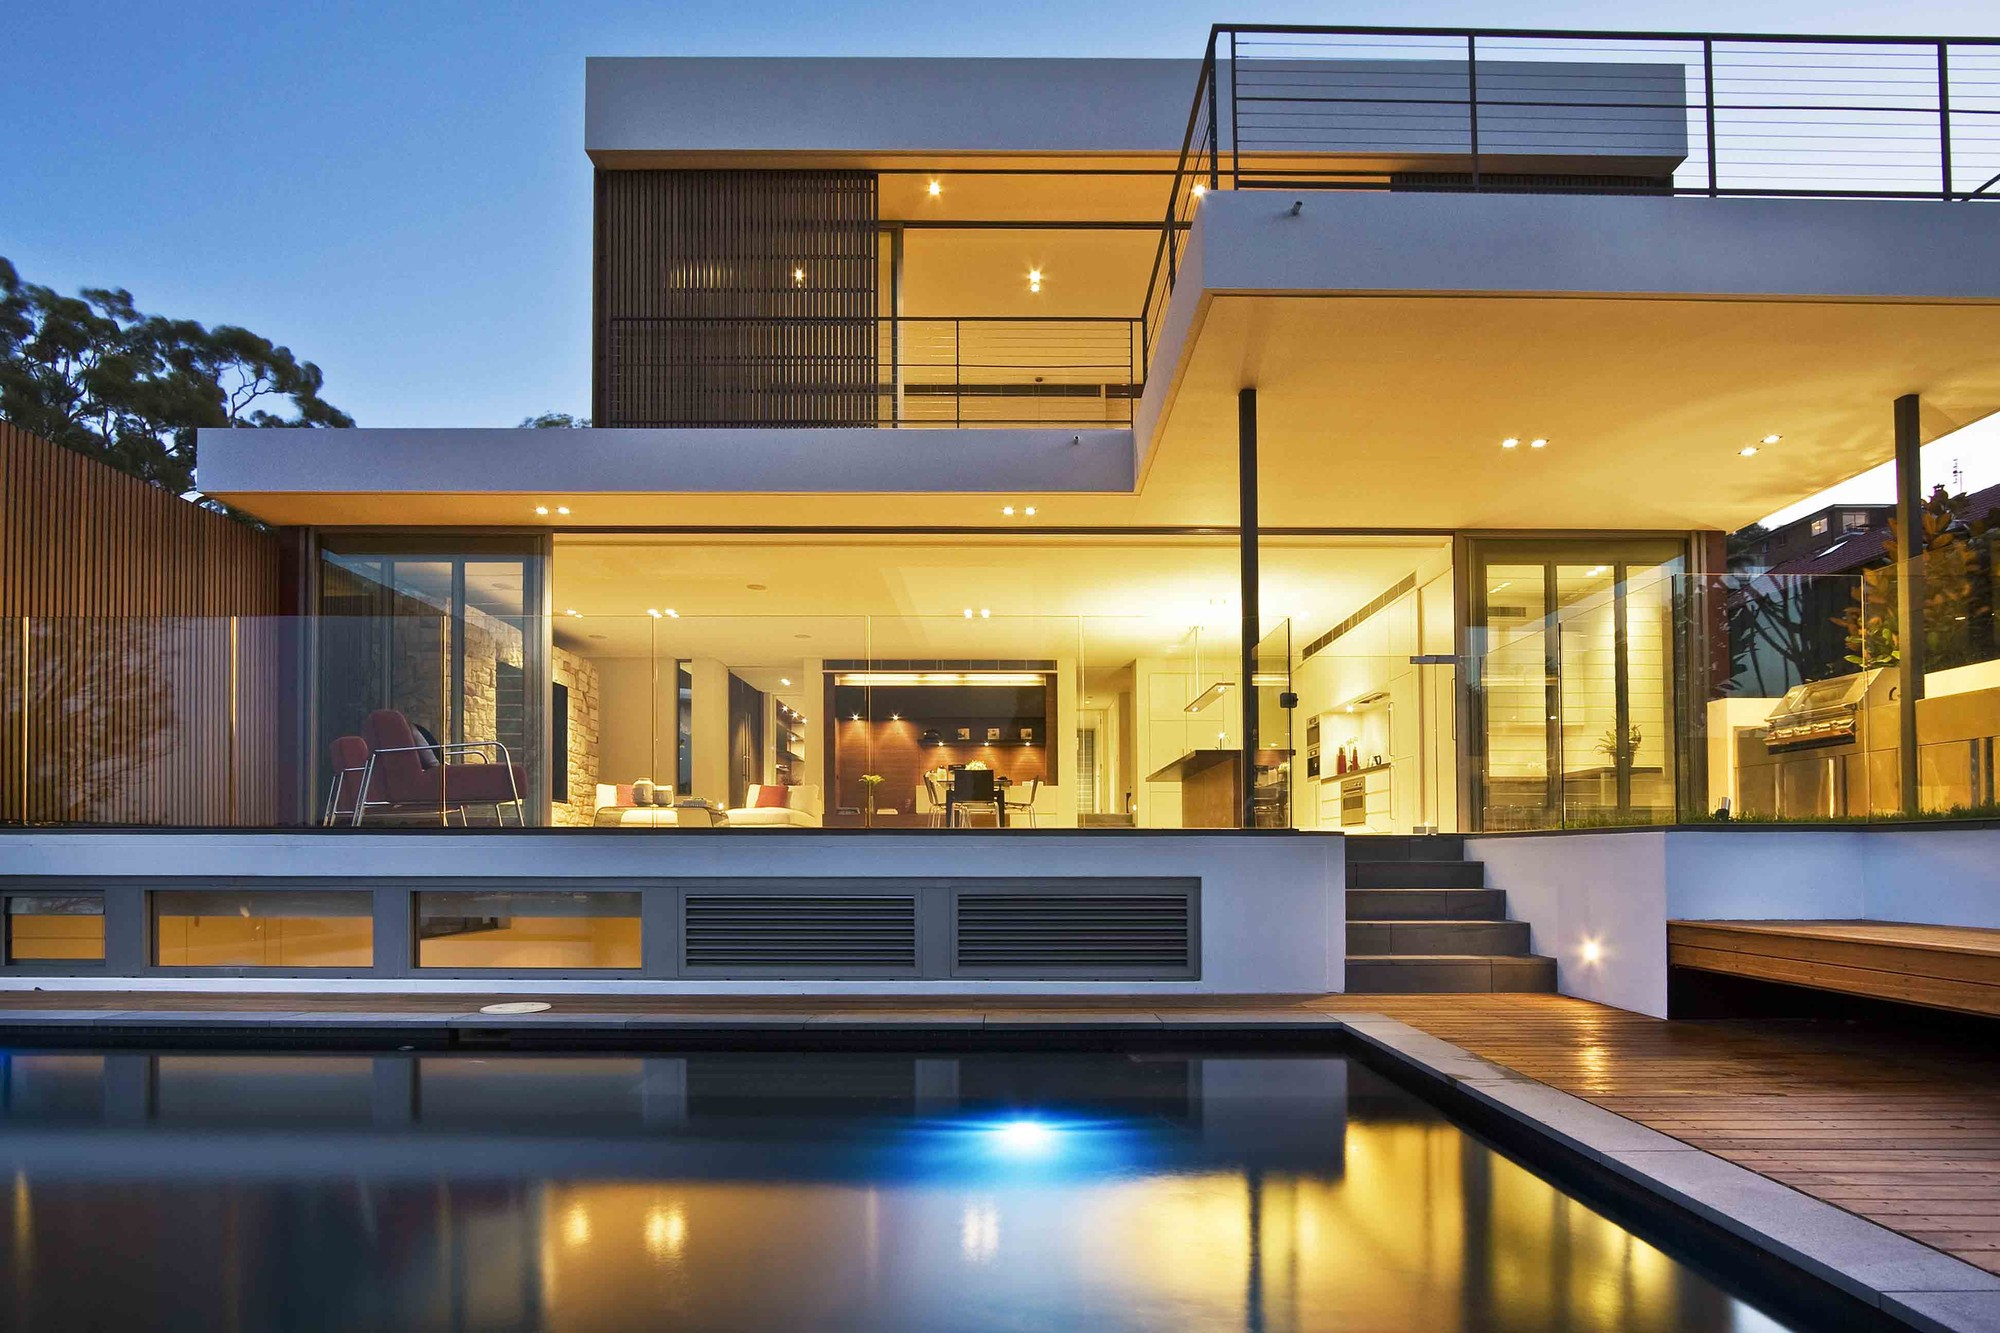 The warringah road house by corben architects in sydney australia